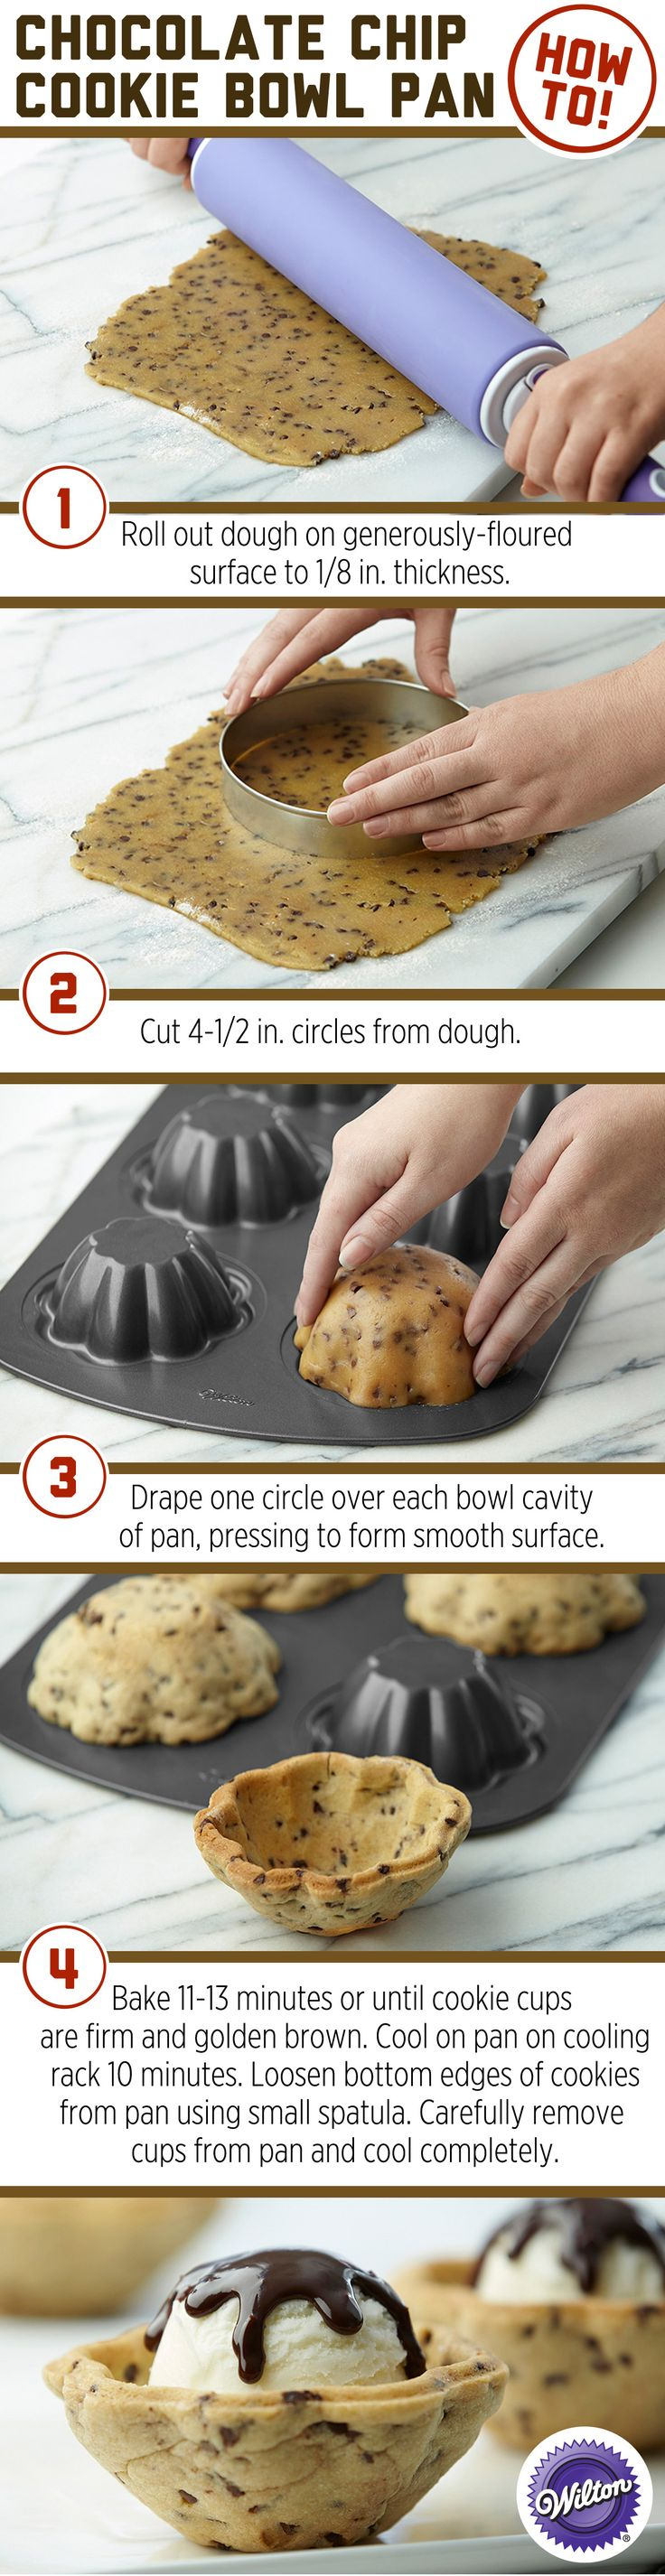 Wilton® ice cream cookie bowl pan - fun way to serve ice cream sundaes—this tool is ideal for baking cookies in the shape of cups. They make the perfect containers for a DIY ice cream bar. They work perfectly for mini cakes, too!